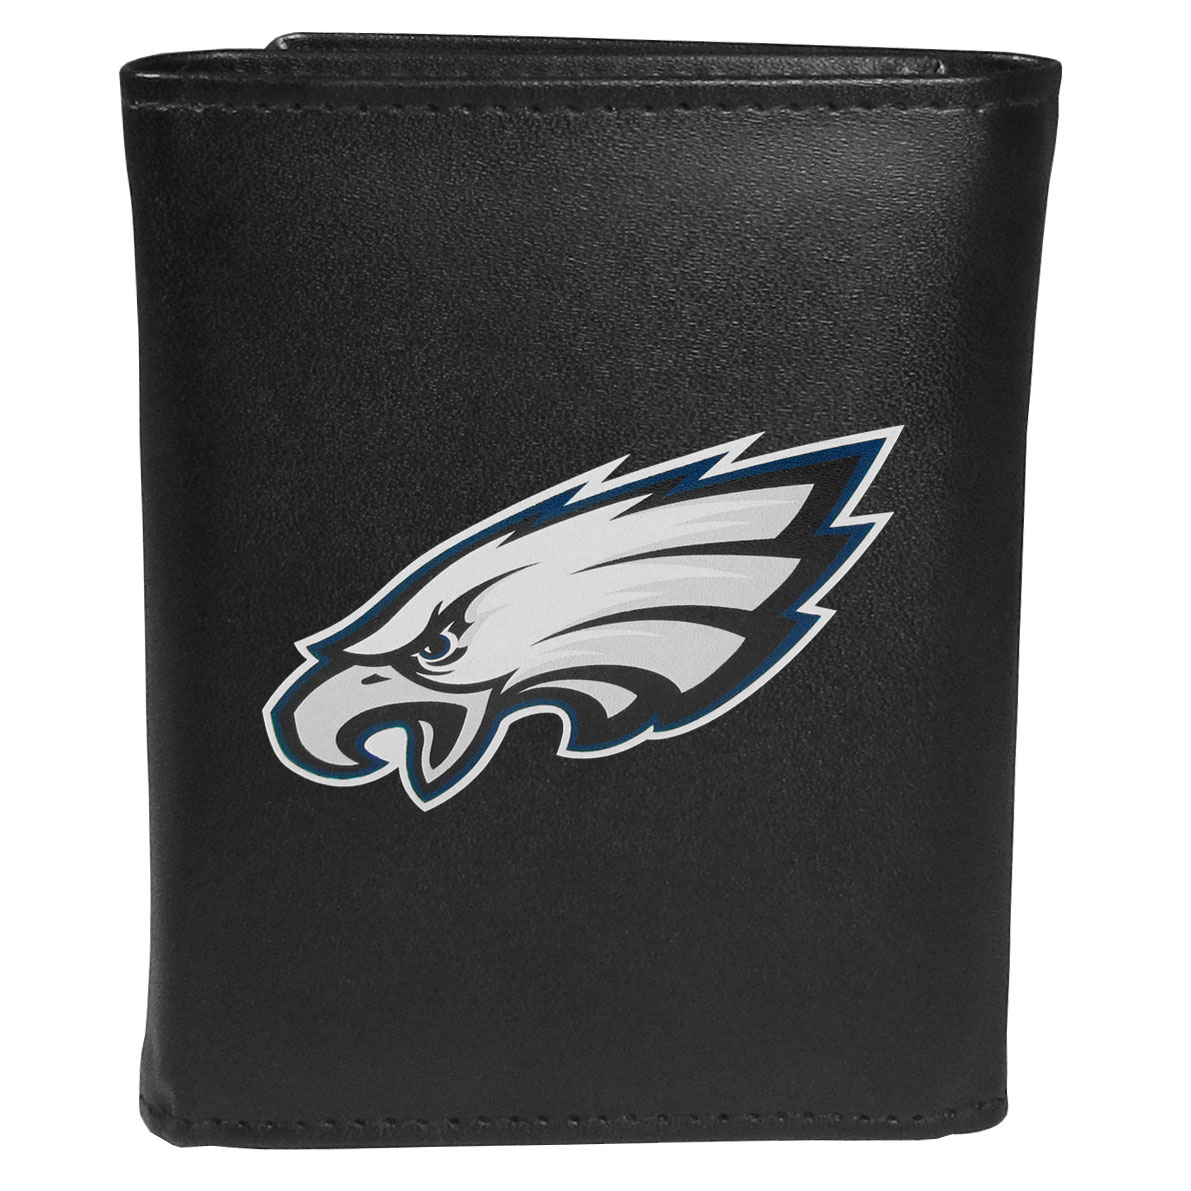 Philadelphia Eagles Tri-fold Wallet Large Logo - Sports fans do not have to sacrifice style with this classic tri-fold wallet that sports thePhiladelphia Eagles?extra large logo. This men's fashion accessory has a leather grain look and expert craftmanship for a quality wallet at a great price. The wallet features inner credit card slots, windowed ID slot and a large billfold pocket. The front of the wallet features an extra large printed team logo.